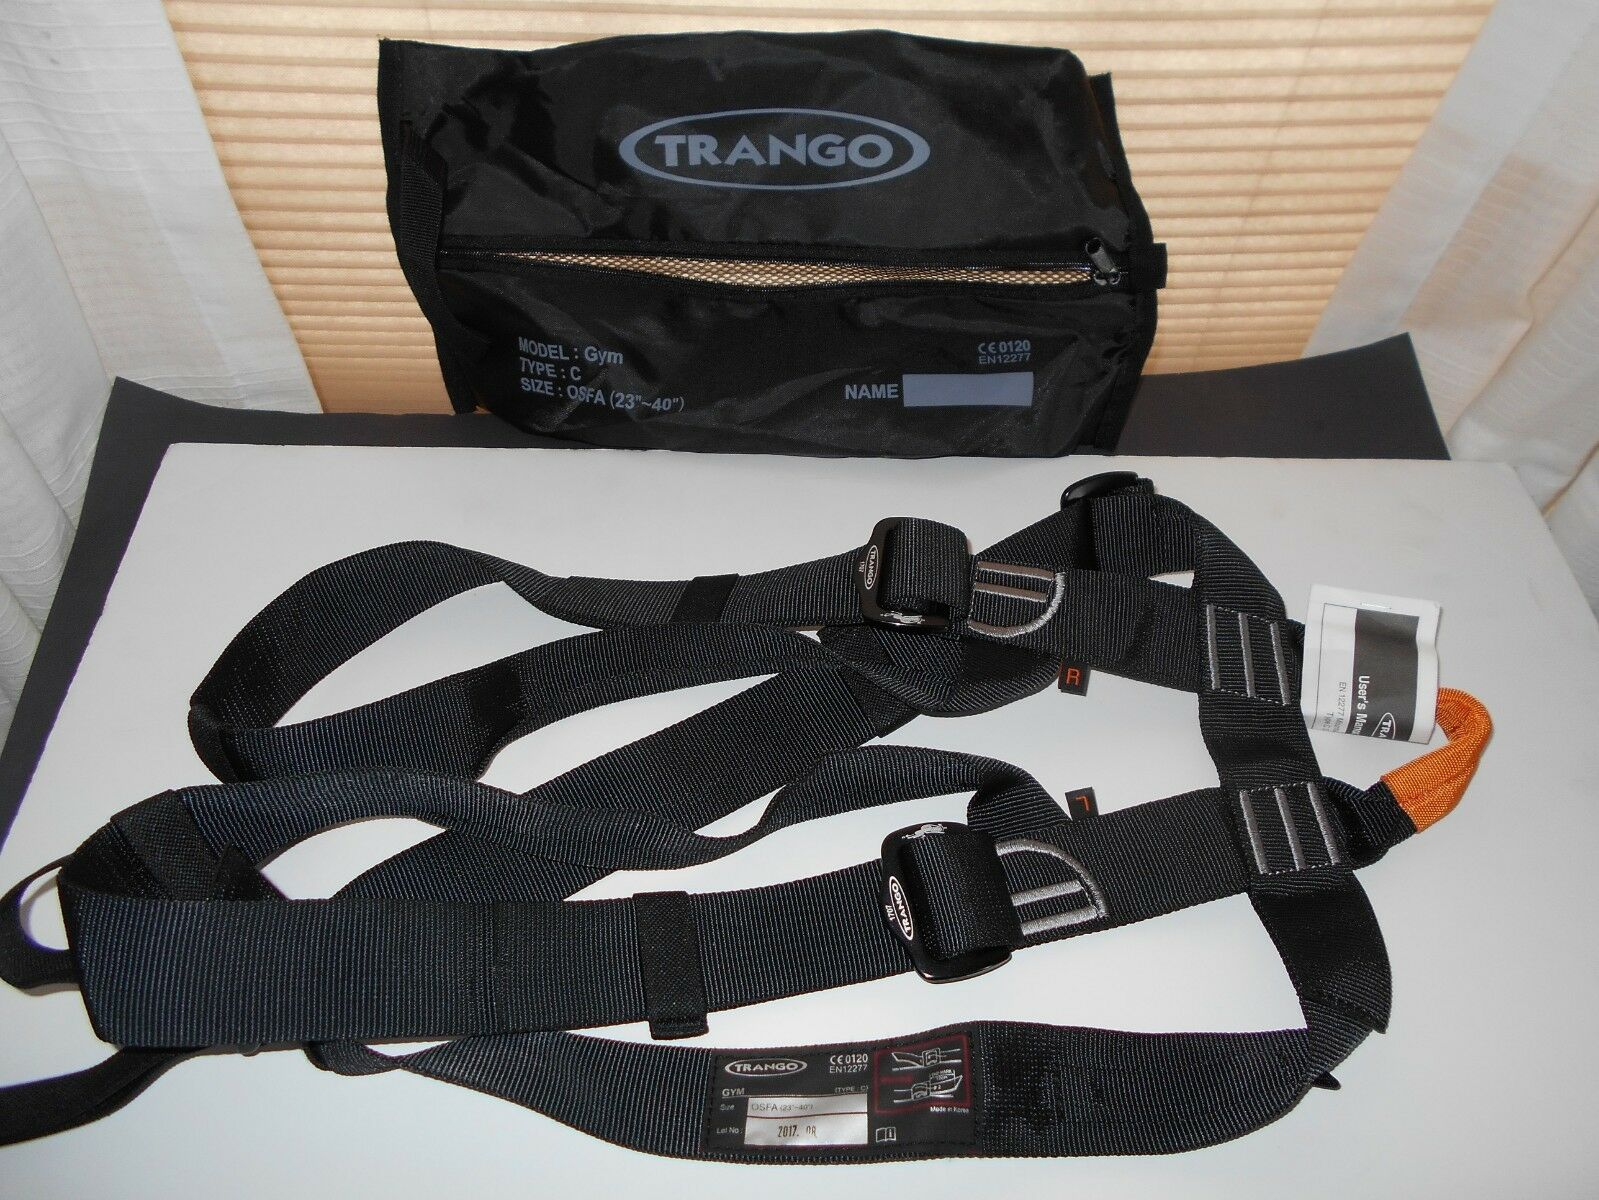 TRANGO GYM Type C SIT HARNESS EN12277, (ONE FITS ALL 23 -40 ), NEW with bag.